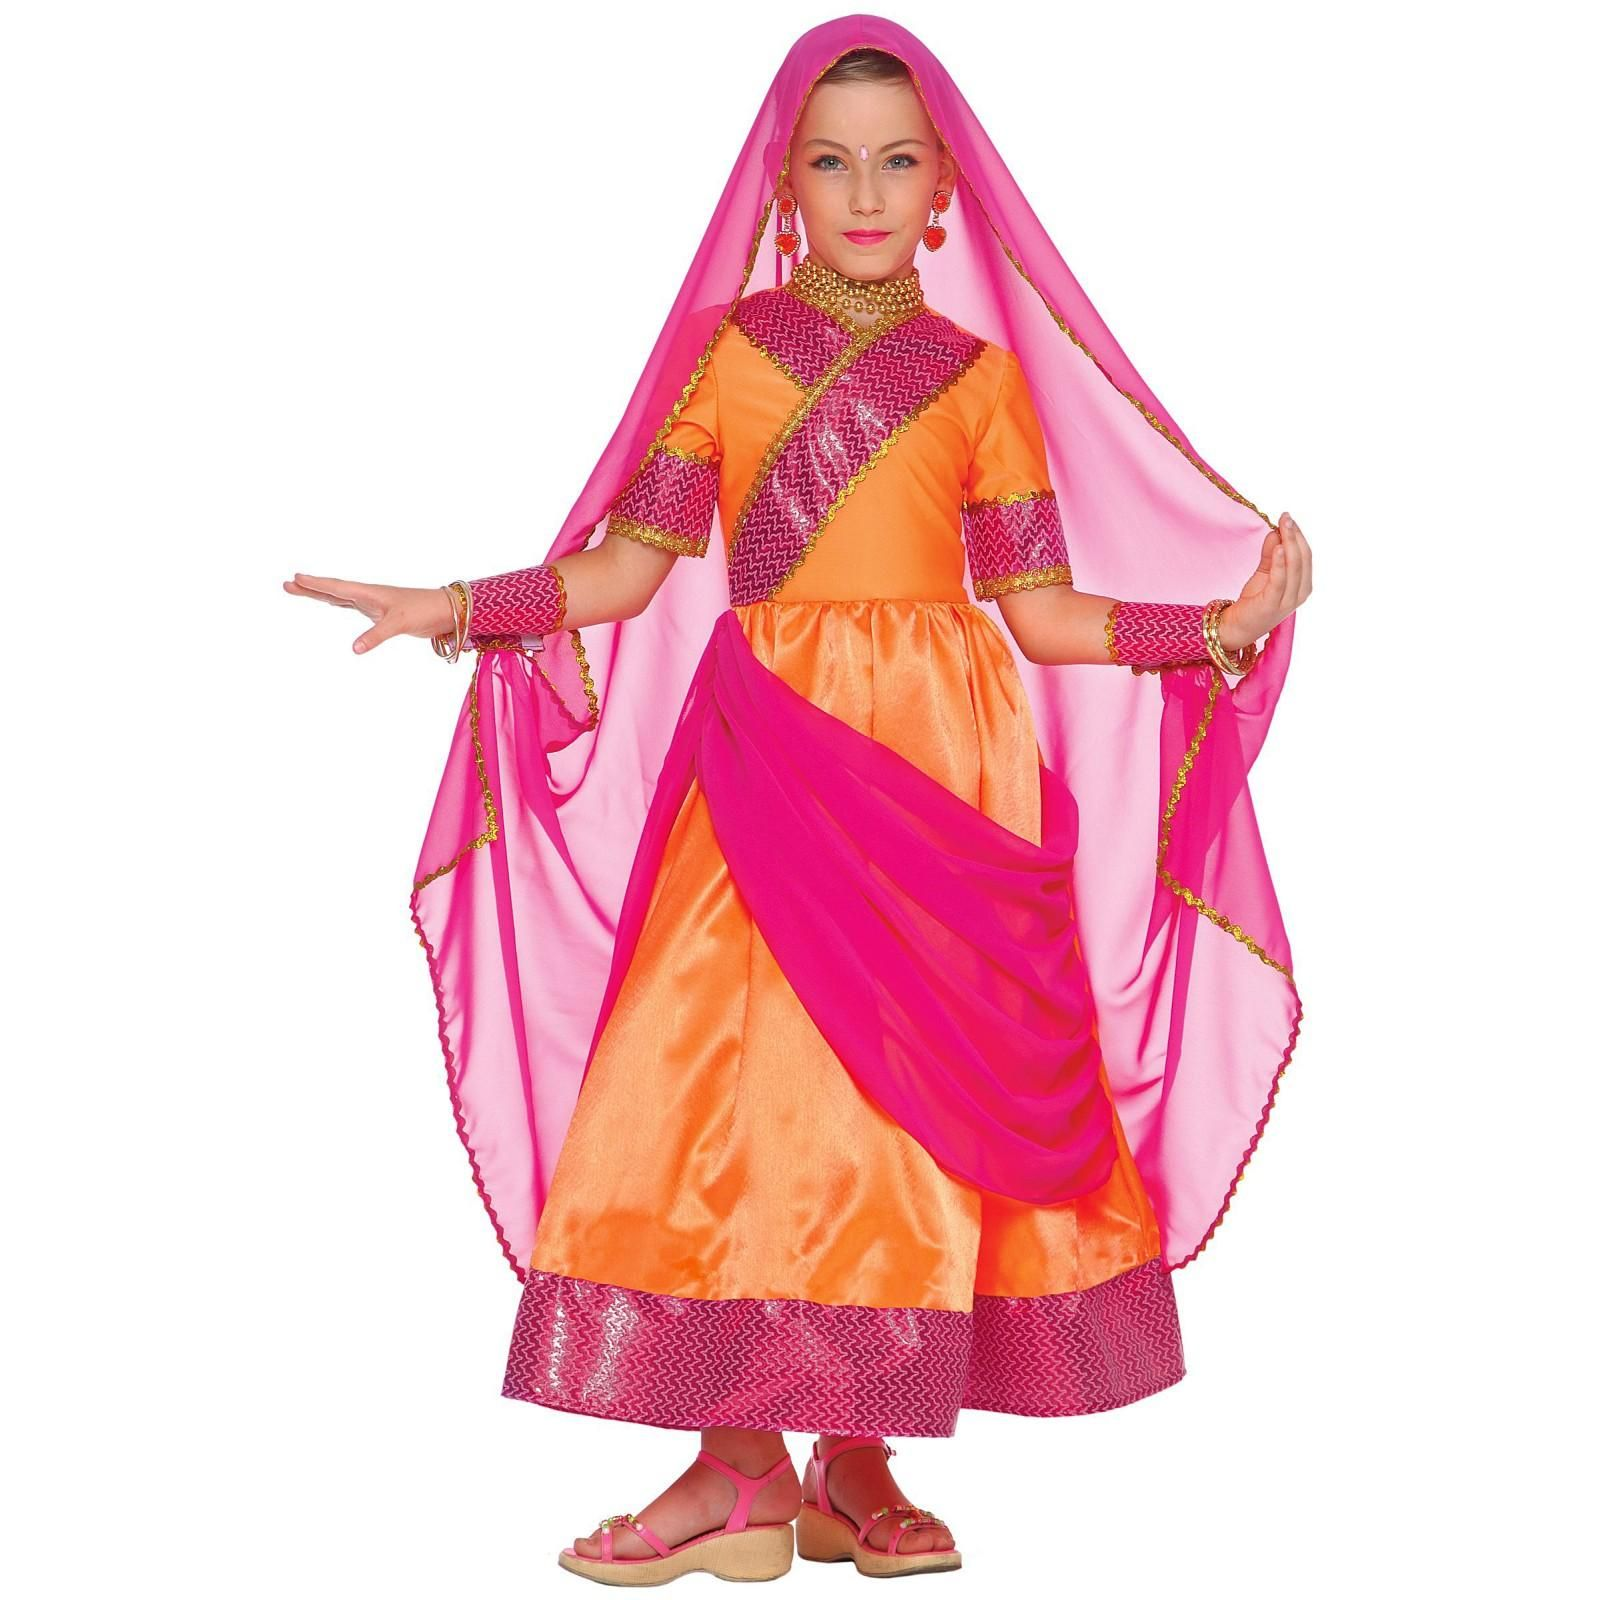 fb924db72b9a1 Bollywood Costumes For Kids - Bollywood Halloween Costume | Aladdin ...